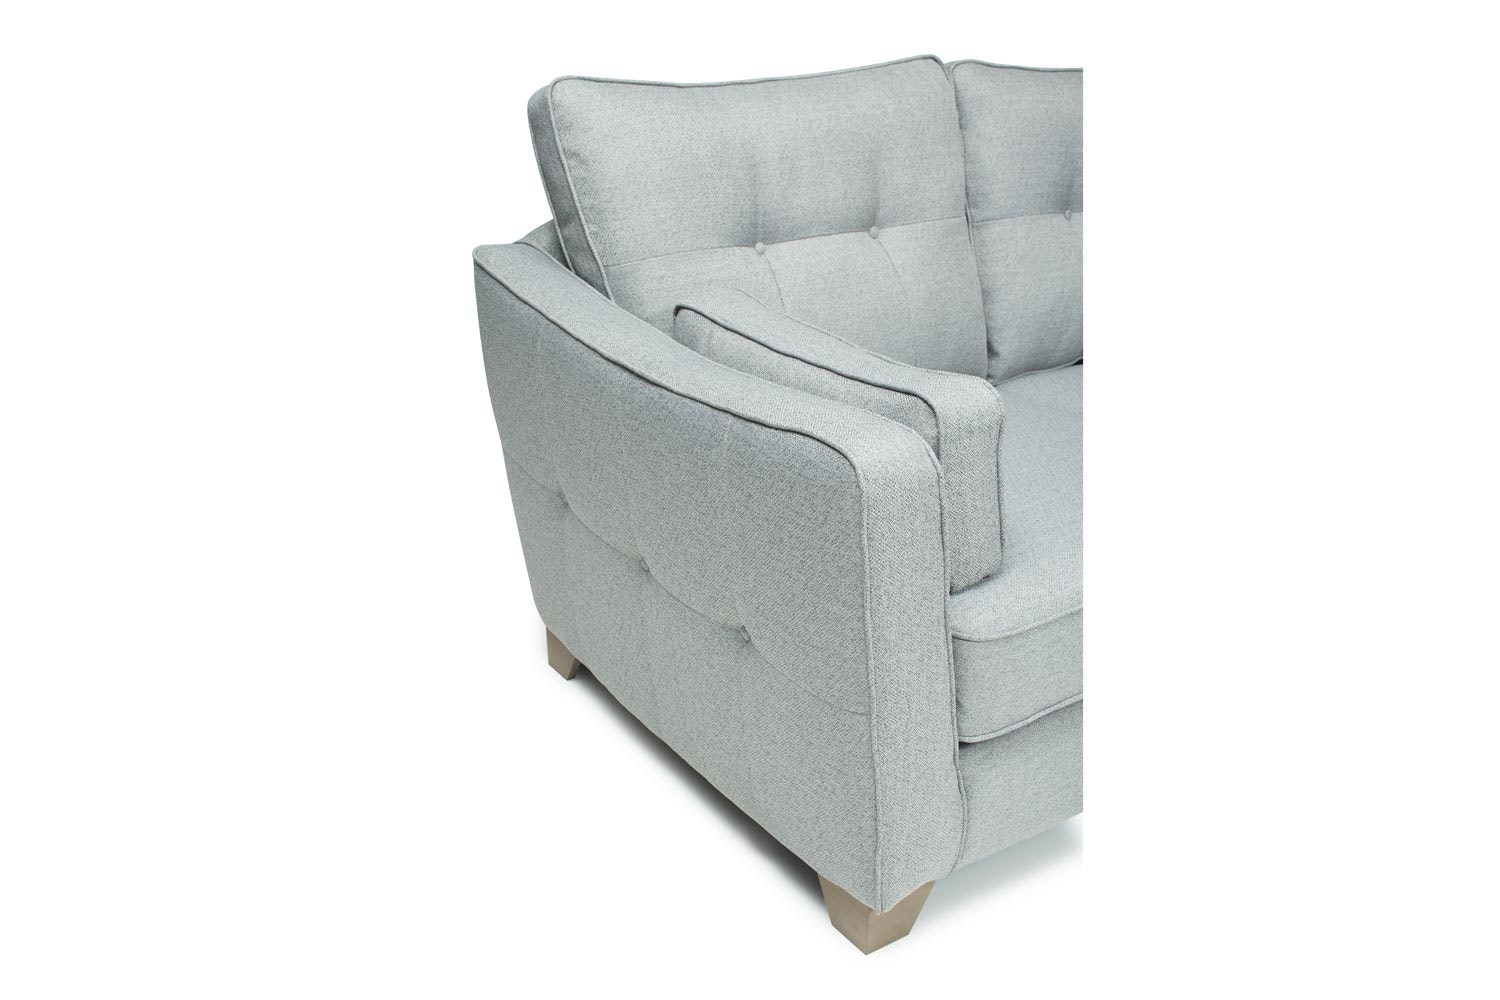 Roxy 2 Seater Sofa